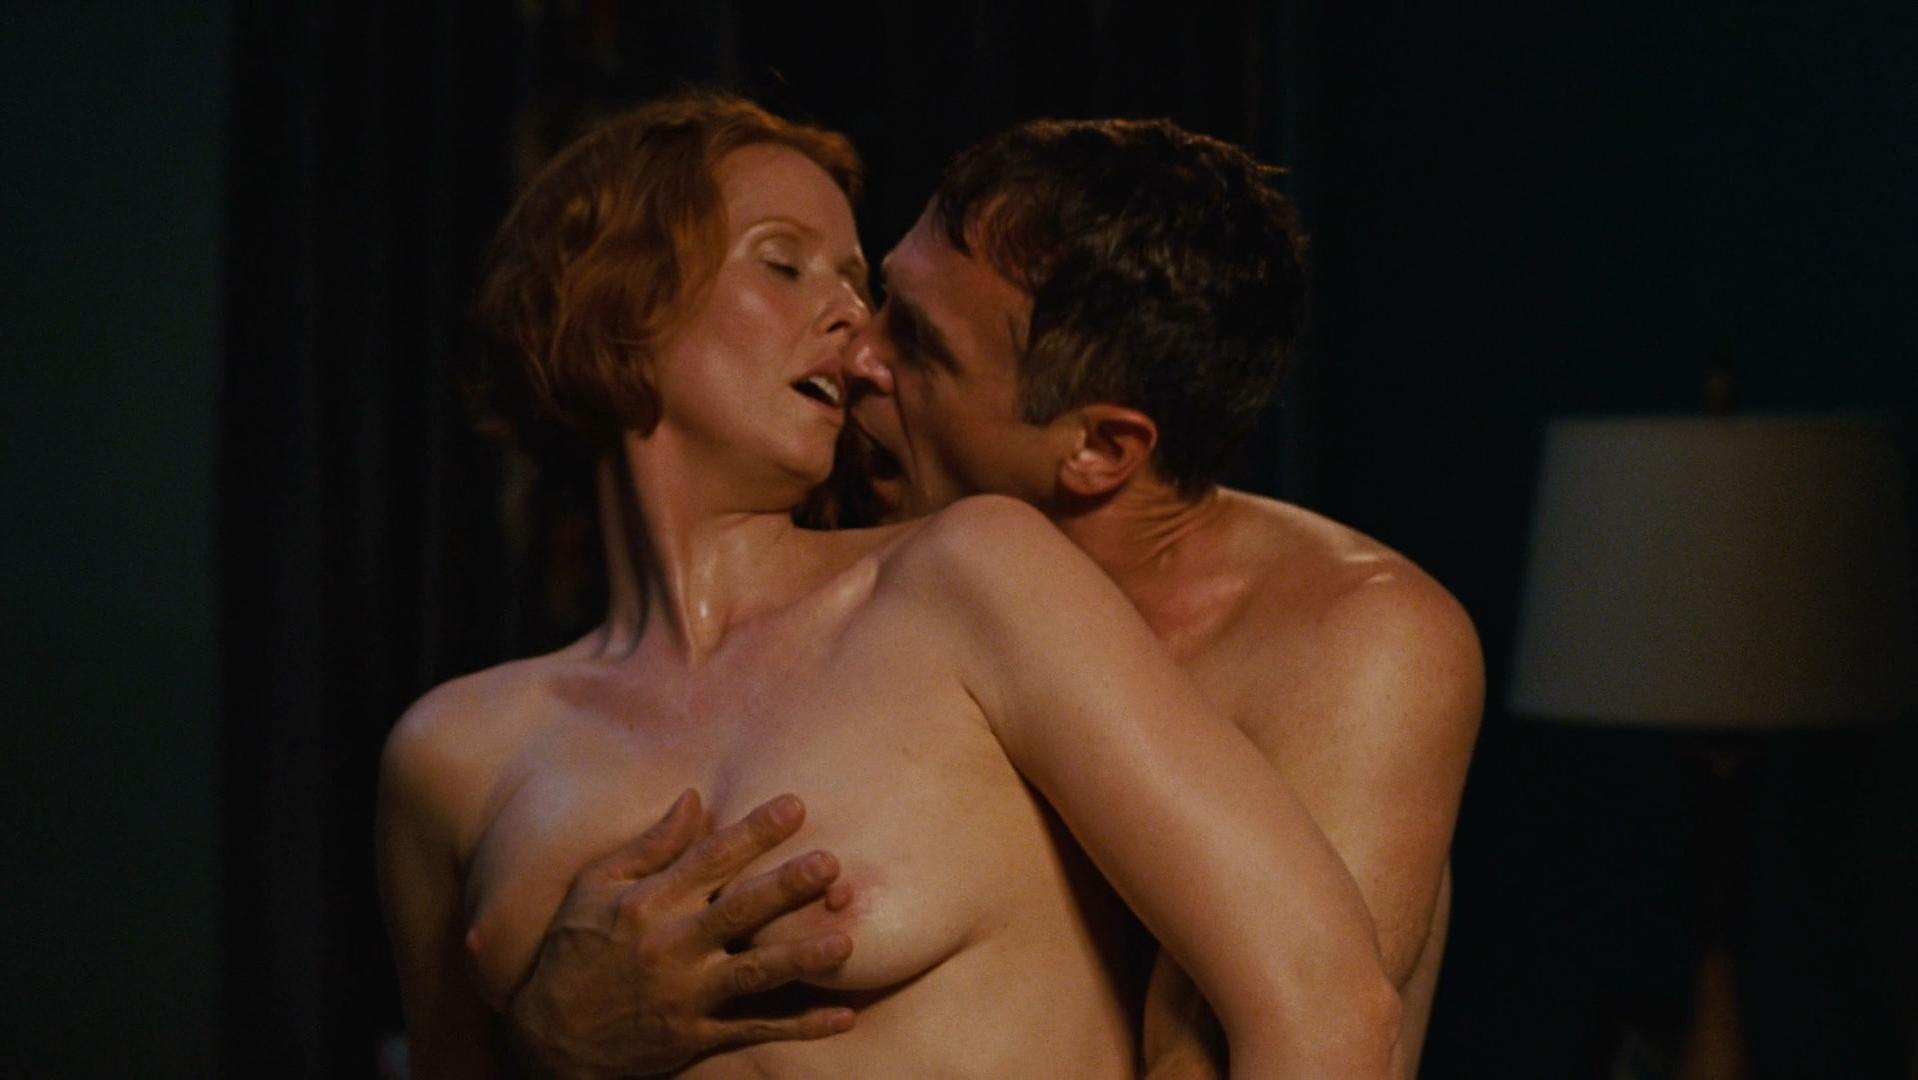 sex and the city movie full frontal